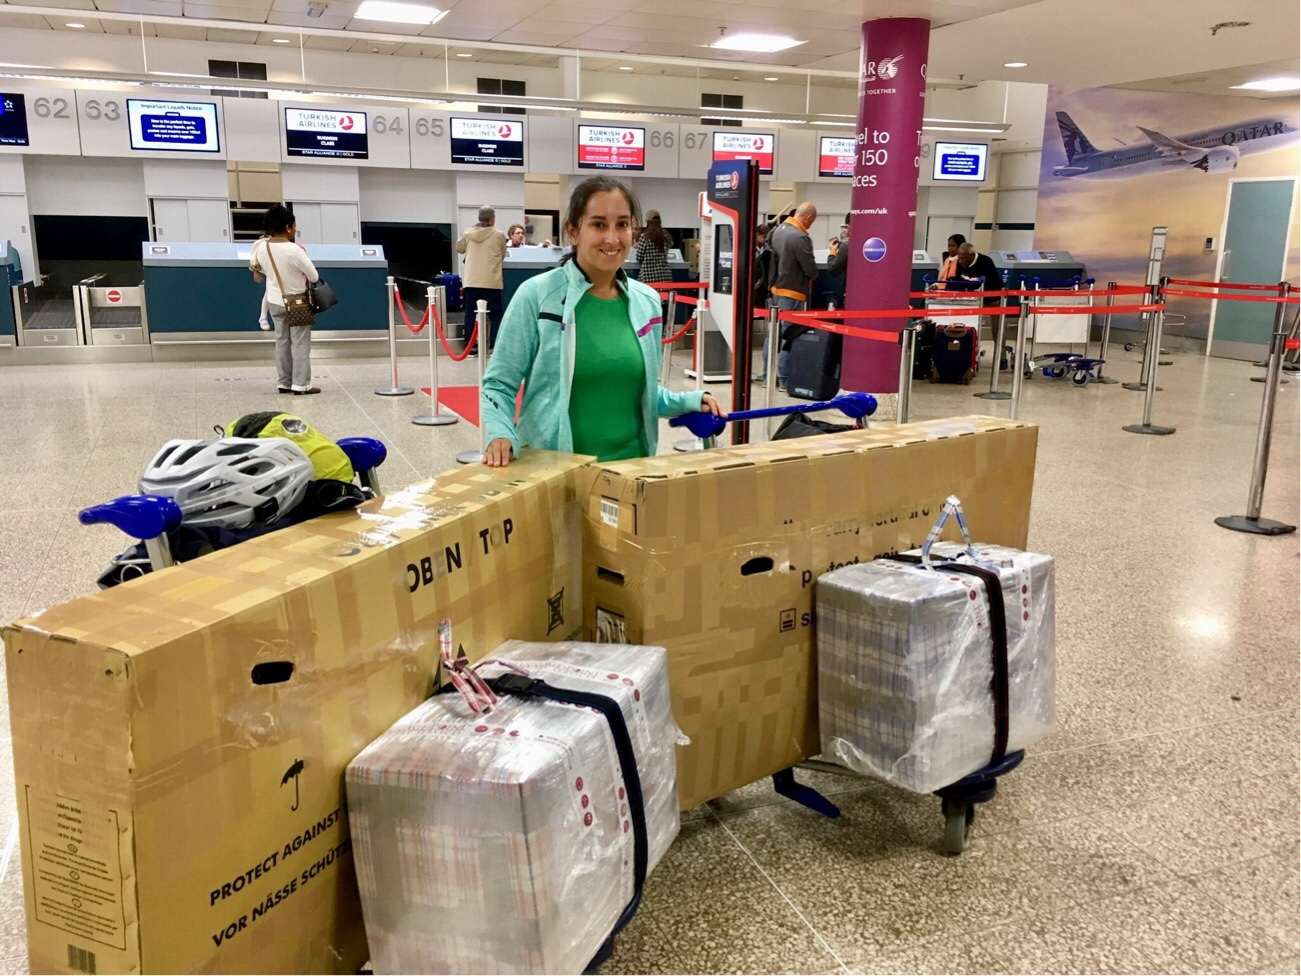 Steph stood with bike boxes and bags in Birmingham airport ready for our flight to Argentina